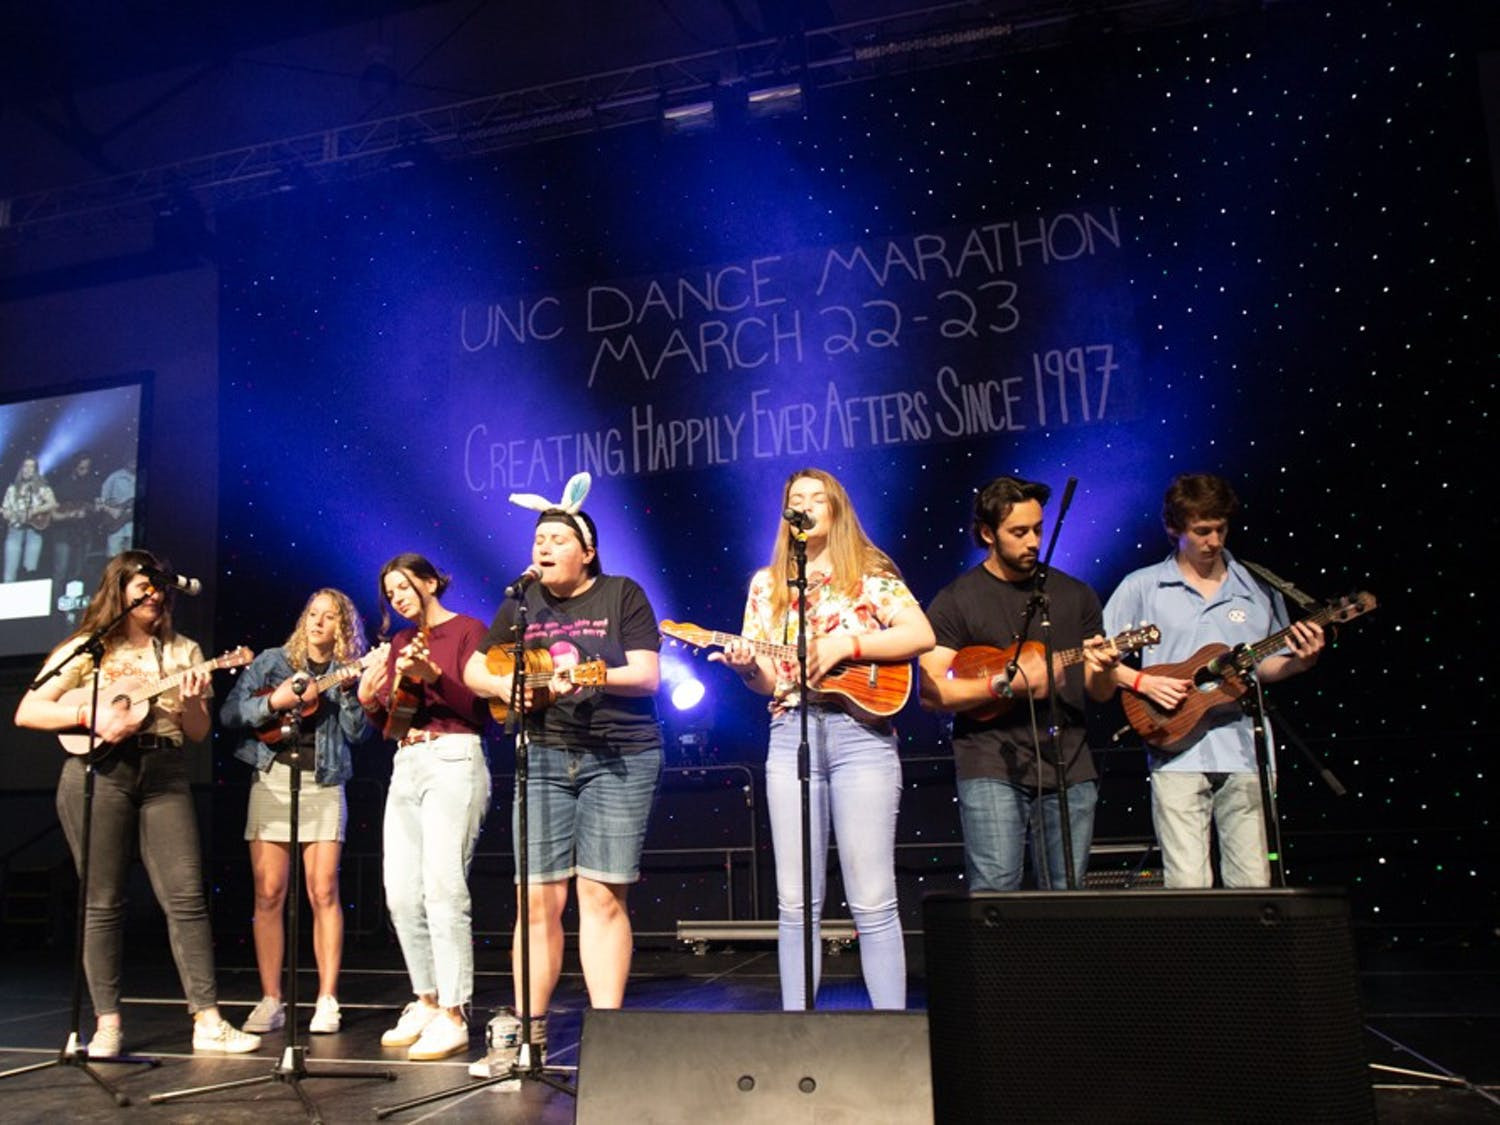 """Carolina For The Kids Foundation hosted the UNC Dance Marathon, a no-sitting, no-sleeping event comprised of over 2,000 students who remain standing for 24 hours at Fetzer Gym, on March 22 and March 23, 2019.  The event is a culmination of year-long fundraising efforts which raised $440,955.07. The money raised goes toward providing families with financial and emotional assistance at UNC Children's Hospital. Students who attended the marathon watched the basketball game between UNC and Iona, danced, watched musical performances and more. Students participated in the marathon for a various personal reasons, including having their own family members in the hospital or,  """"seeing how much of an impact we can have on a family,"""" junior biology major Jessica Martinson said."""